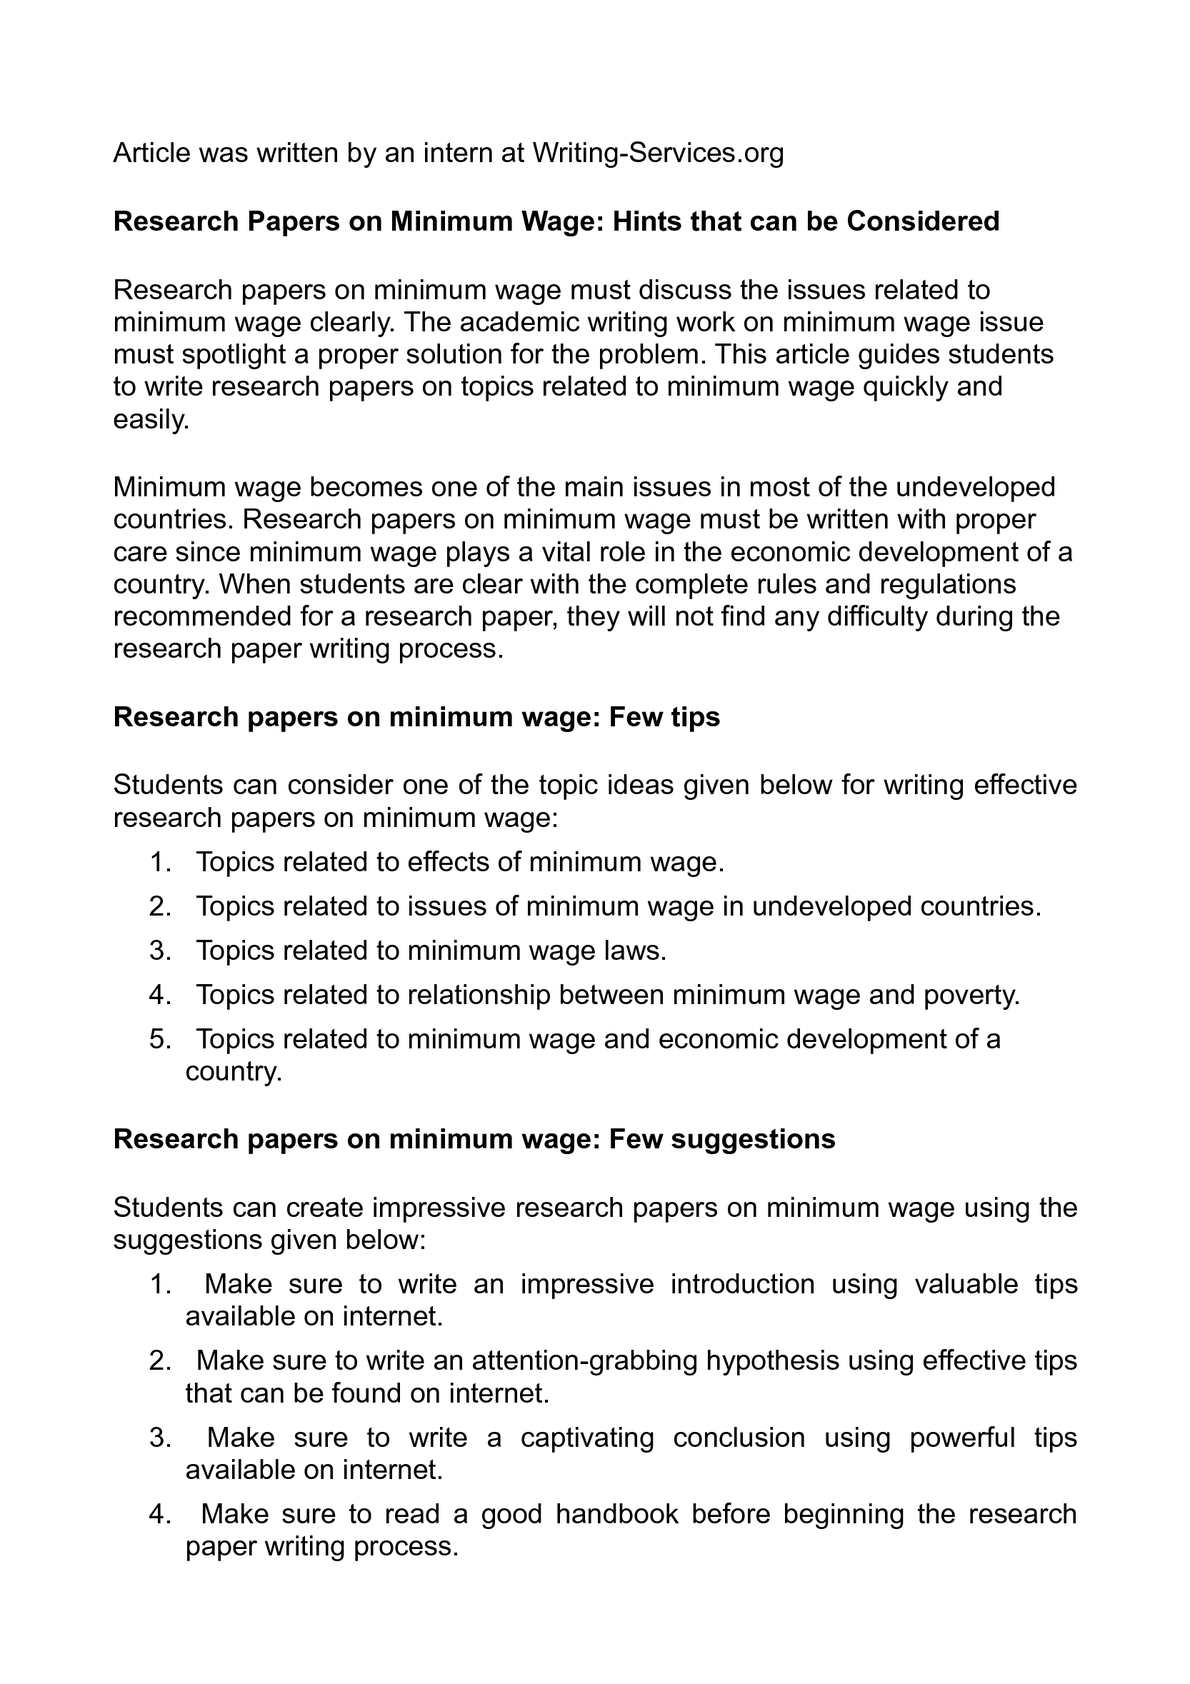 Calaméo Research Papers On Minimum Wage Hints That Can Be Considered